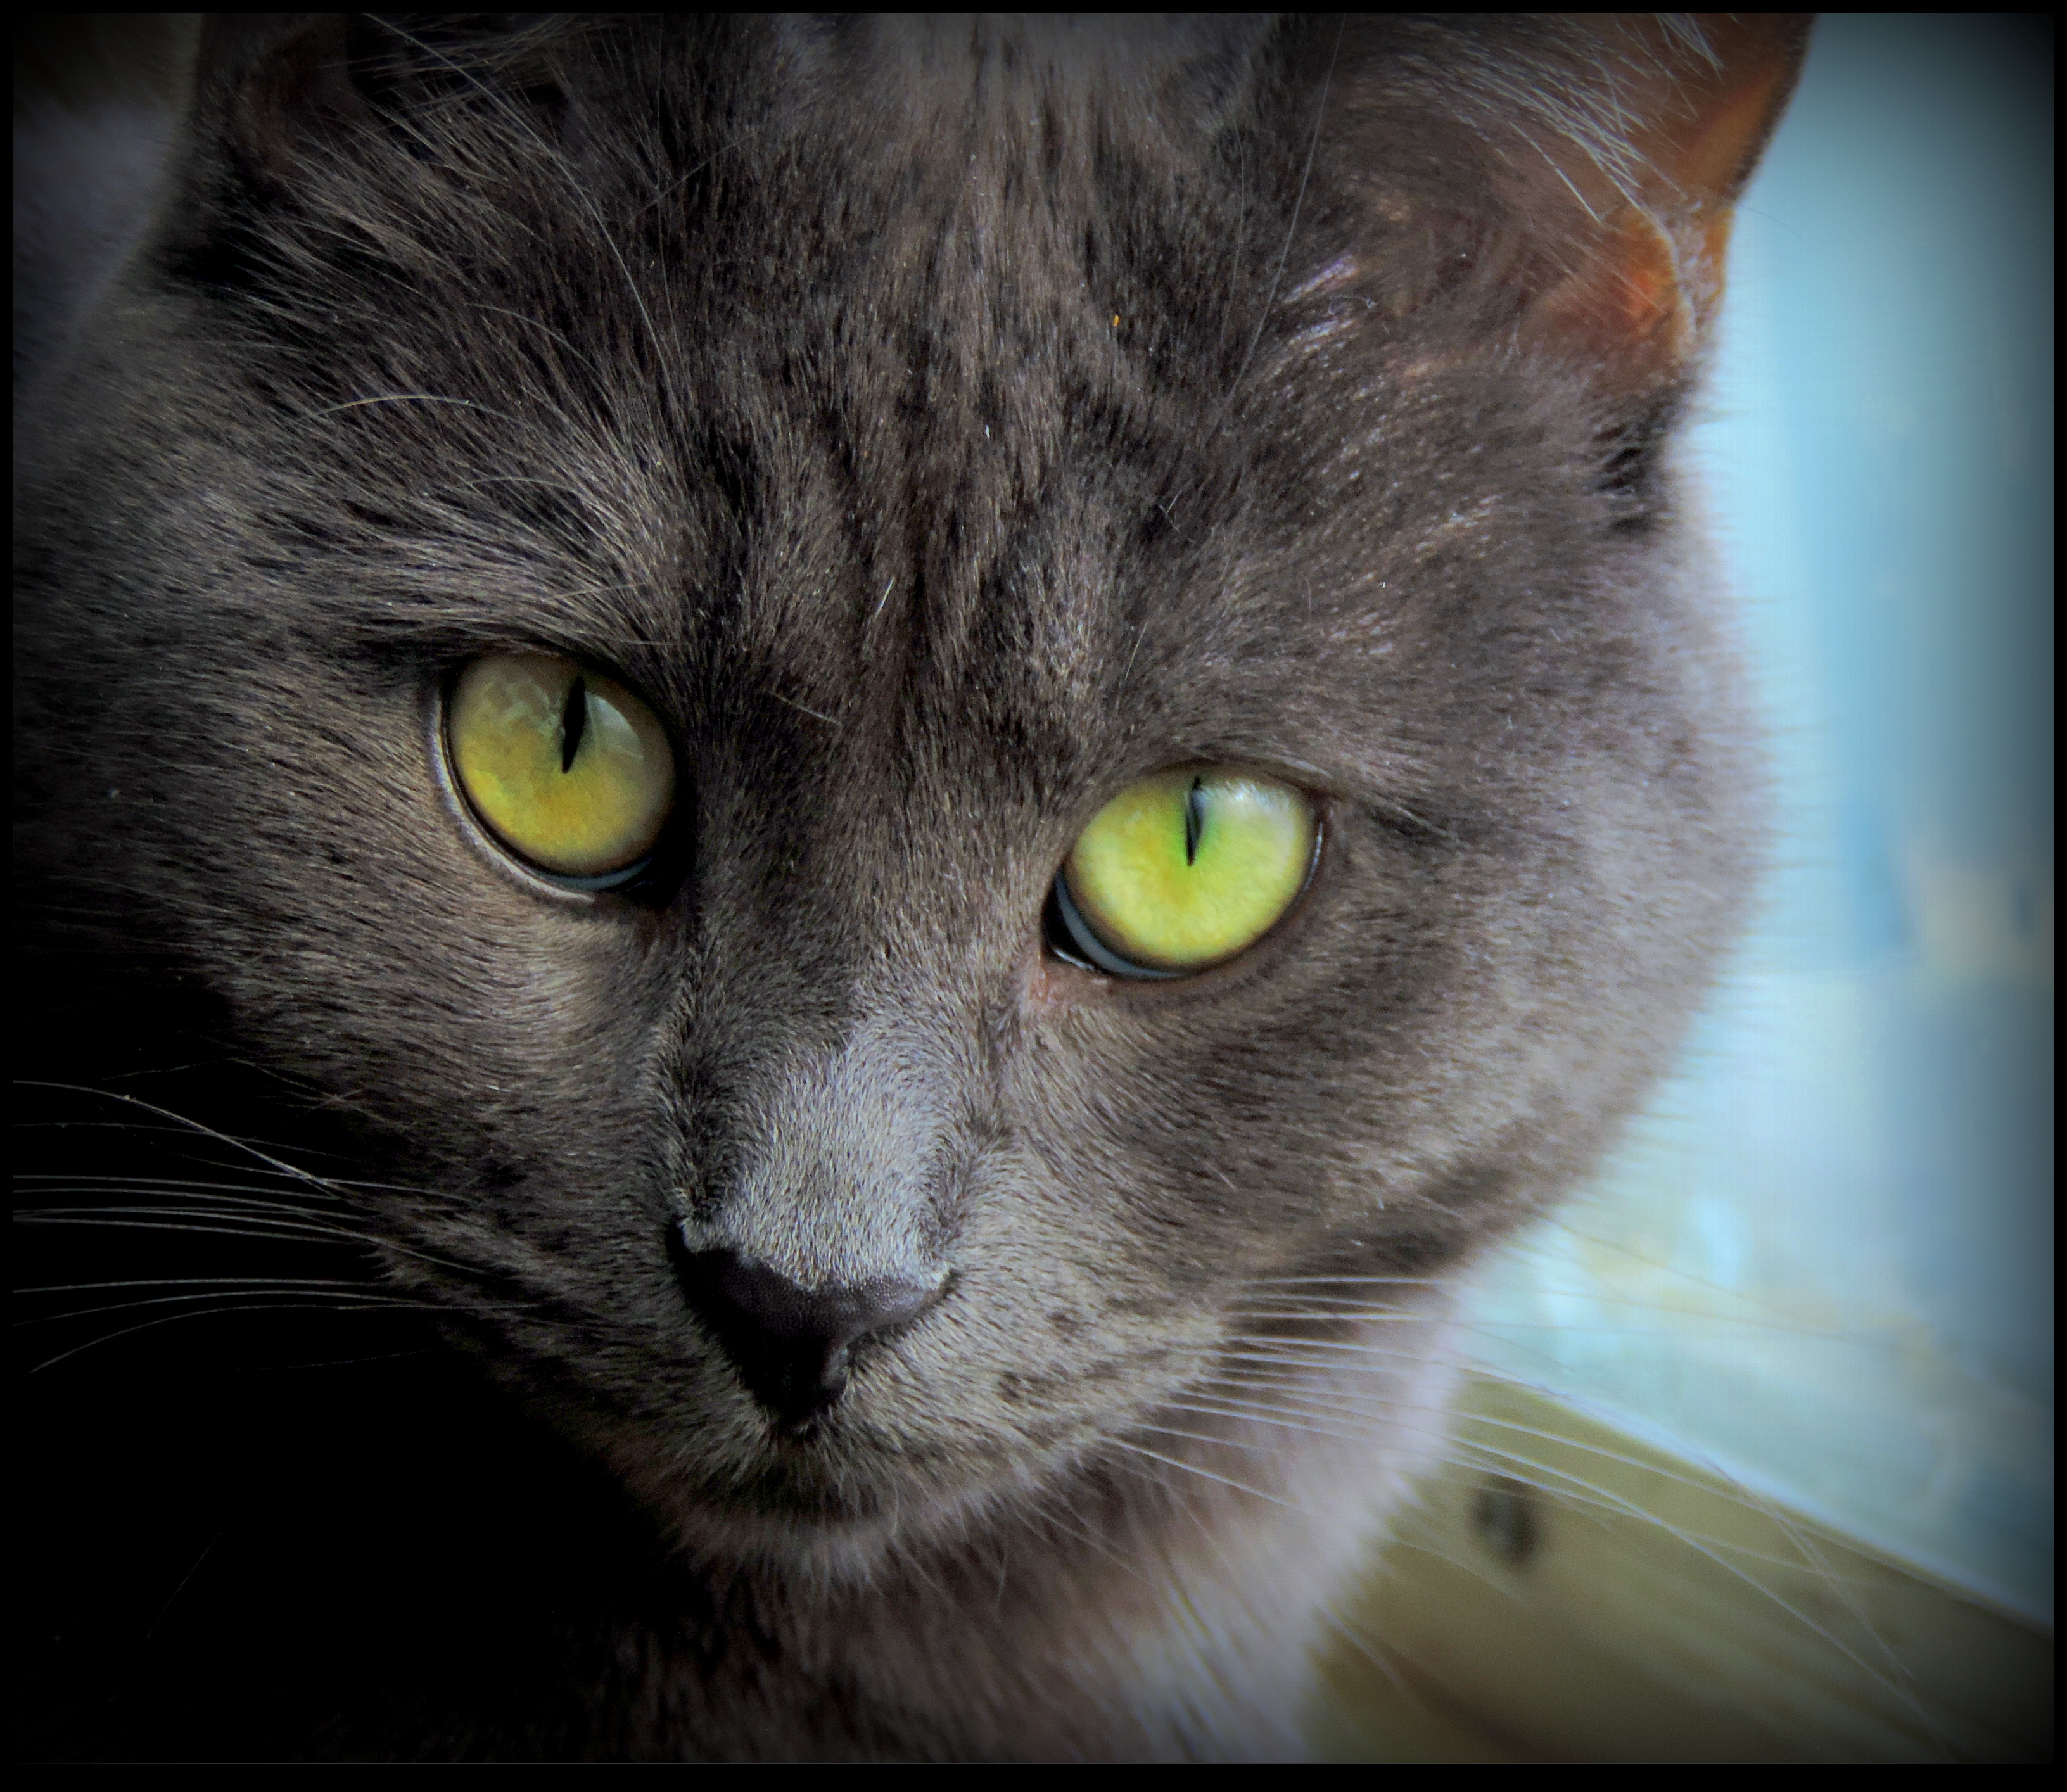 My Cat's Stare by JocelyneR